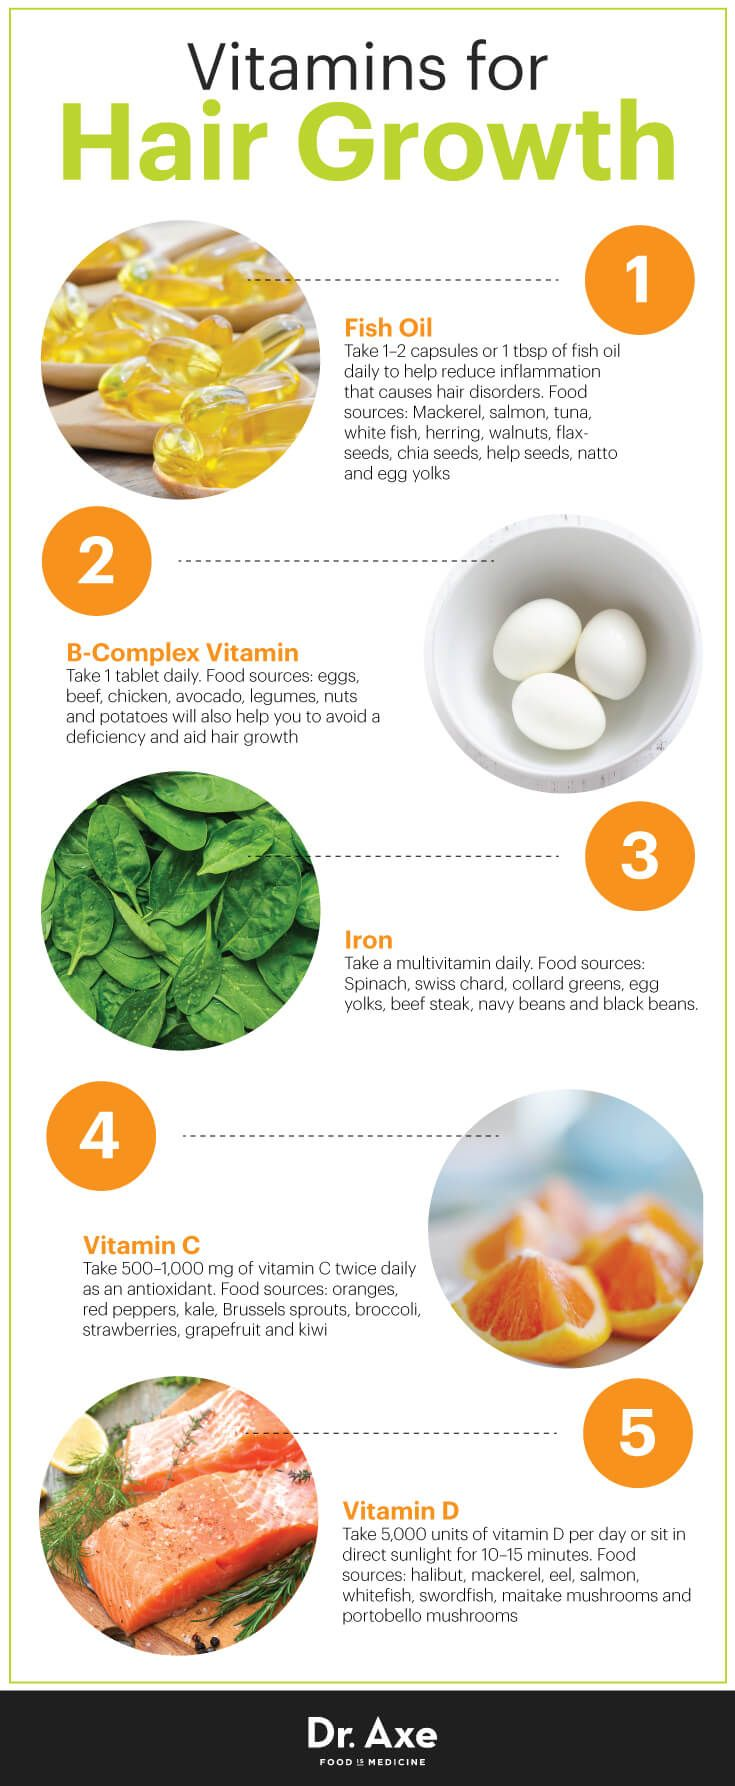 What vitamins are needed for hair Feedback on their benefits